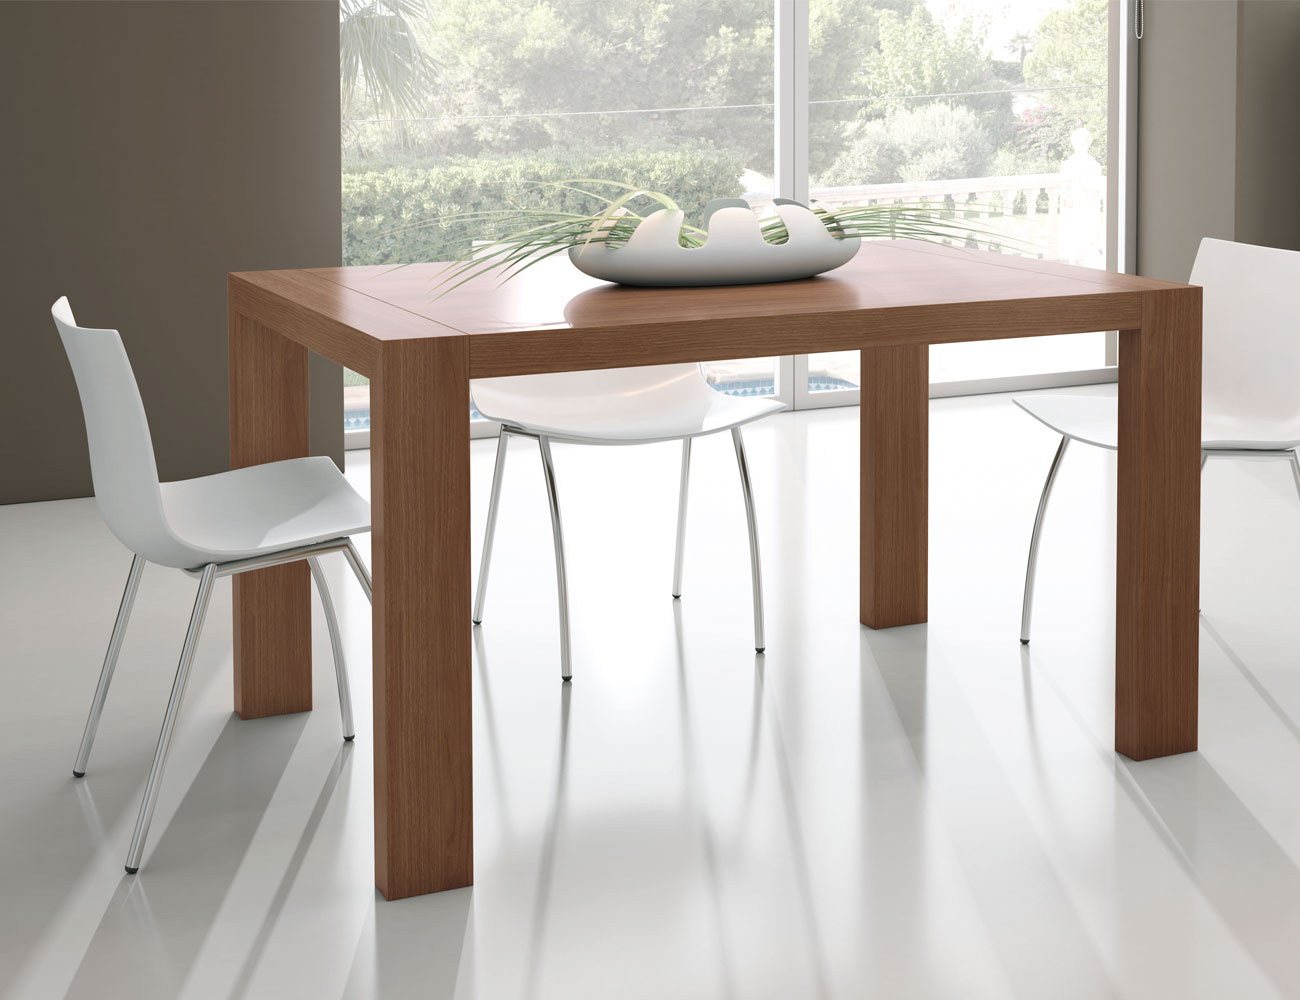 M223 mesa comedor rectangular extensible nogal9